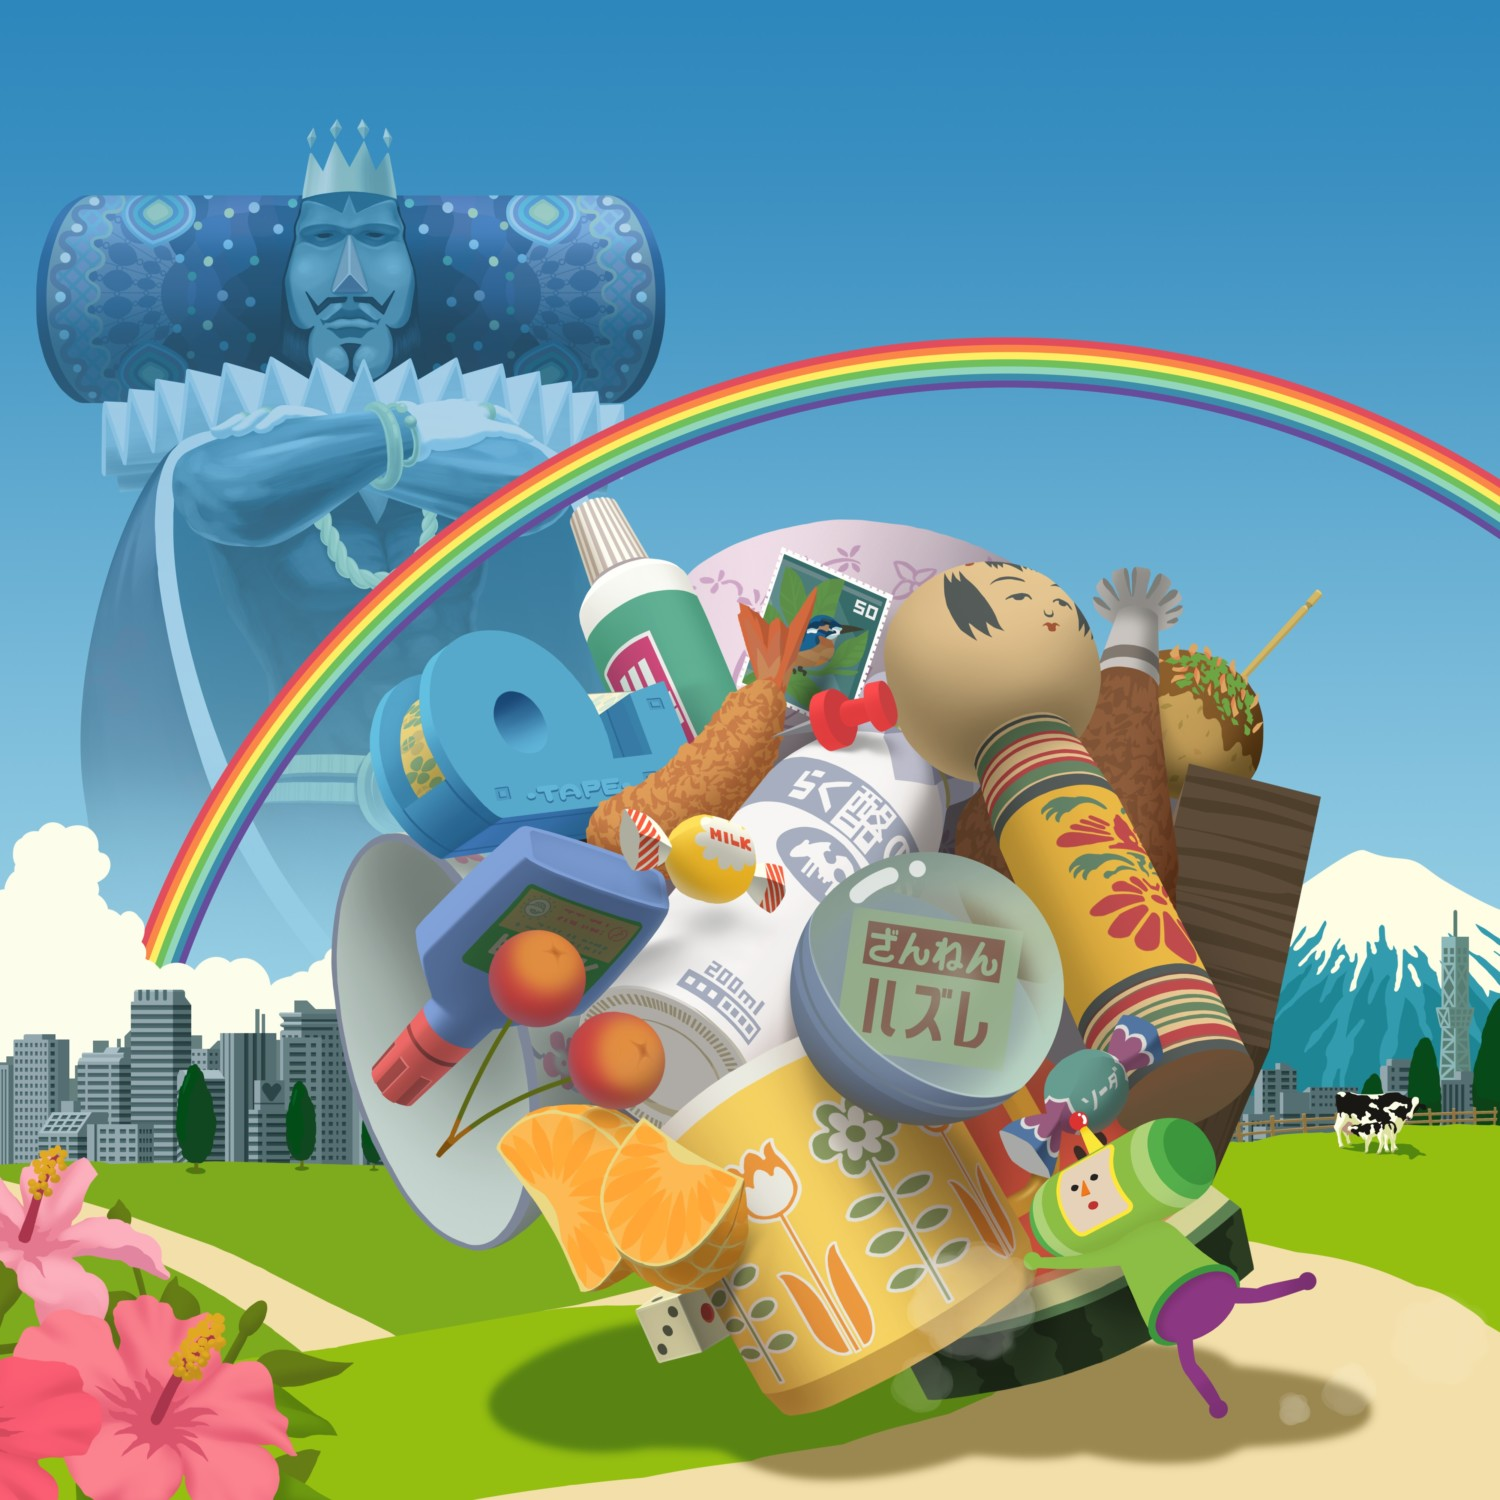 Katamari Damacy:Reroll on Steam Dec 7